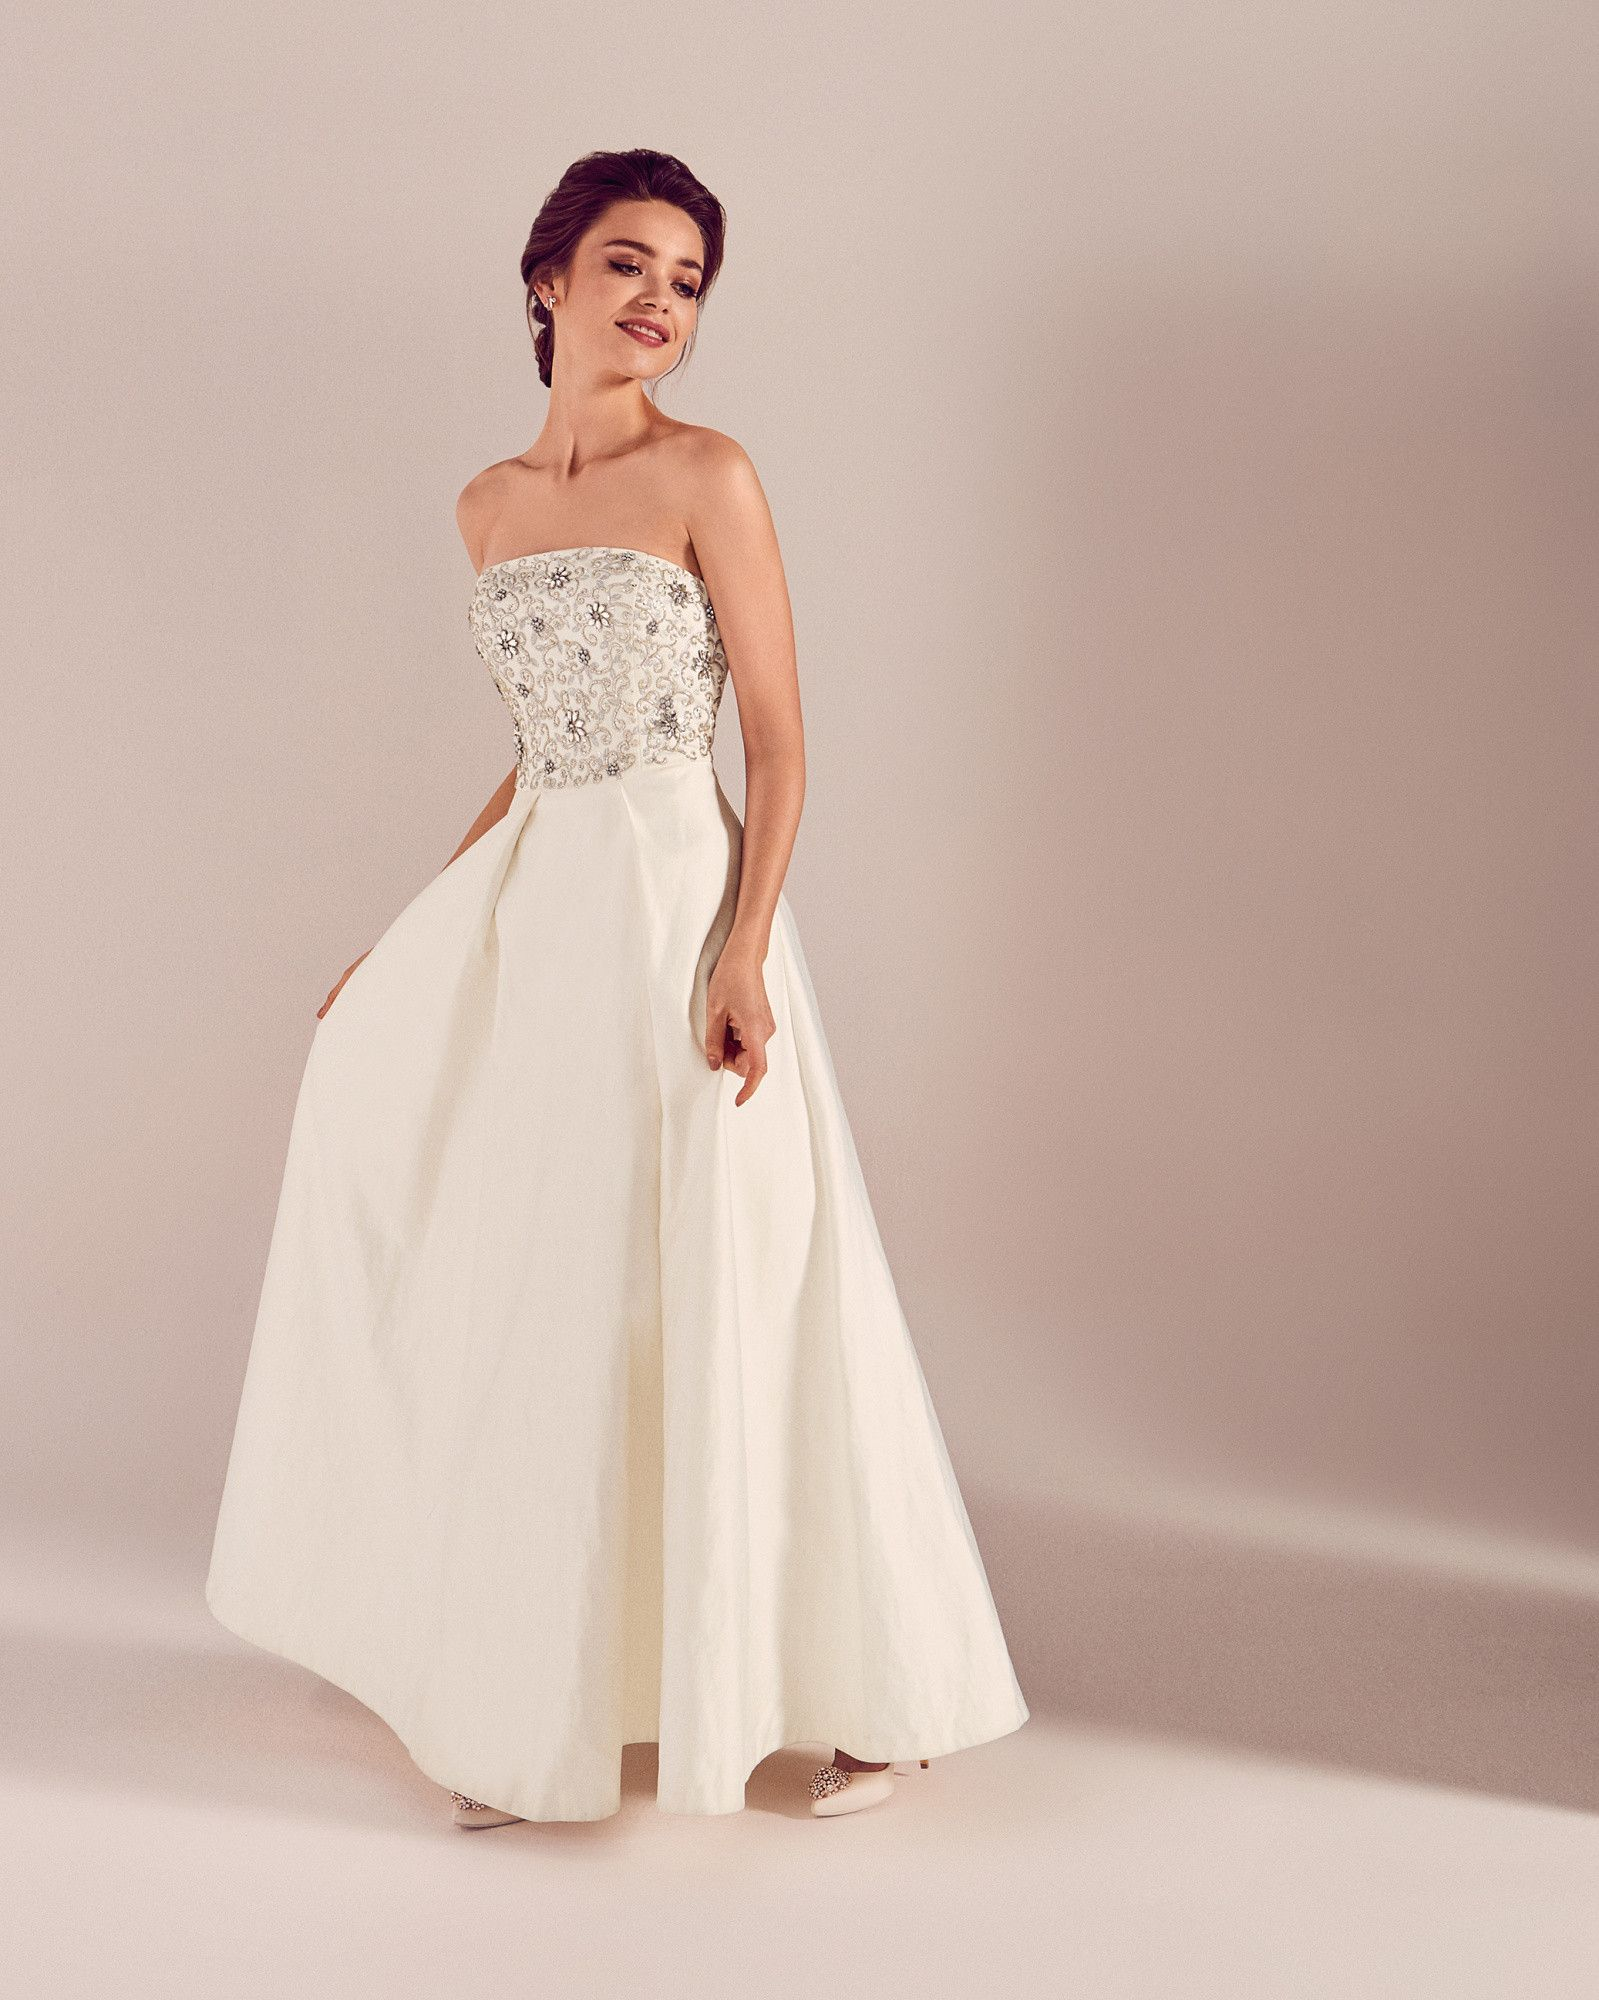 Say I Do Wearing A Decadent Designer Wedding Dress From Ted Baker His Brand New Selection Of Sensational Bridal Dresses Will Make Your Search Effortless